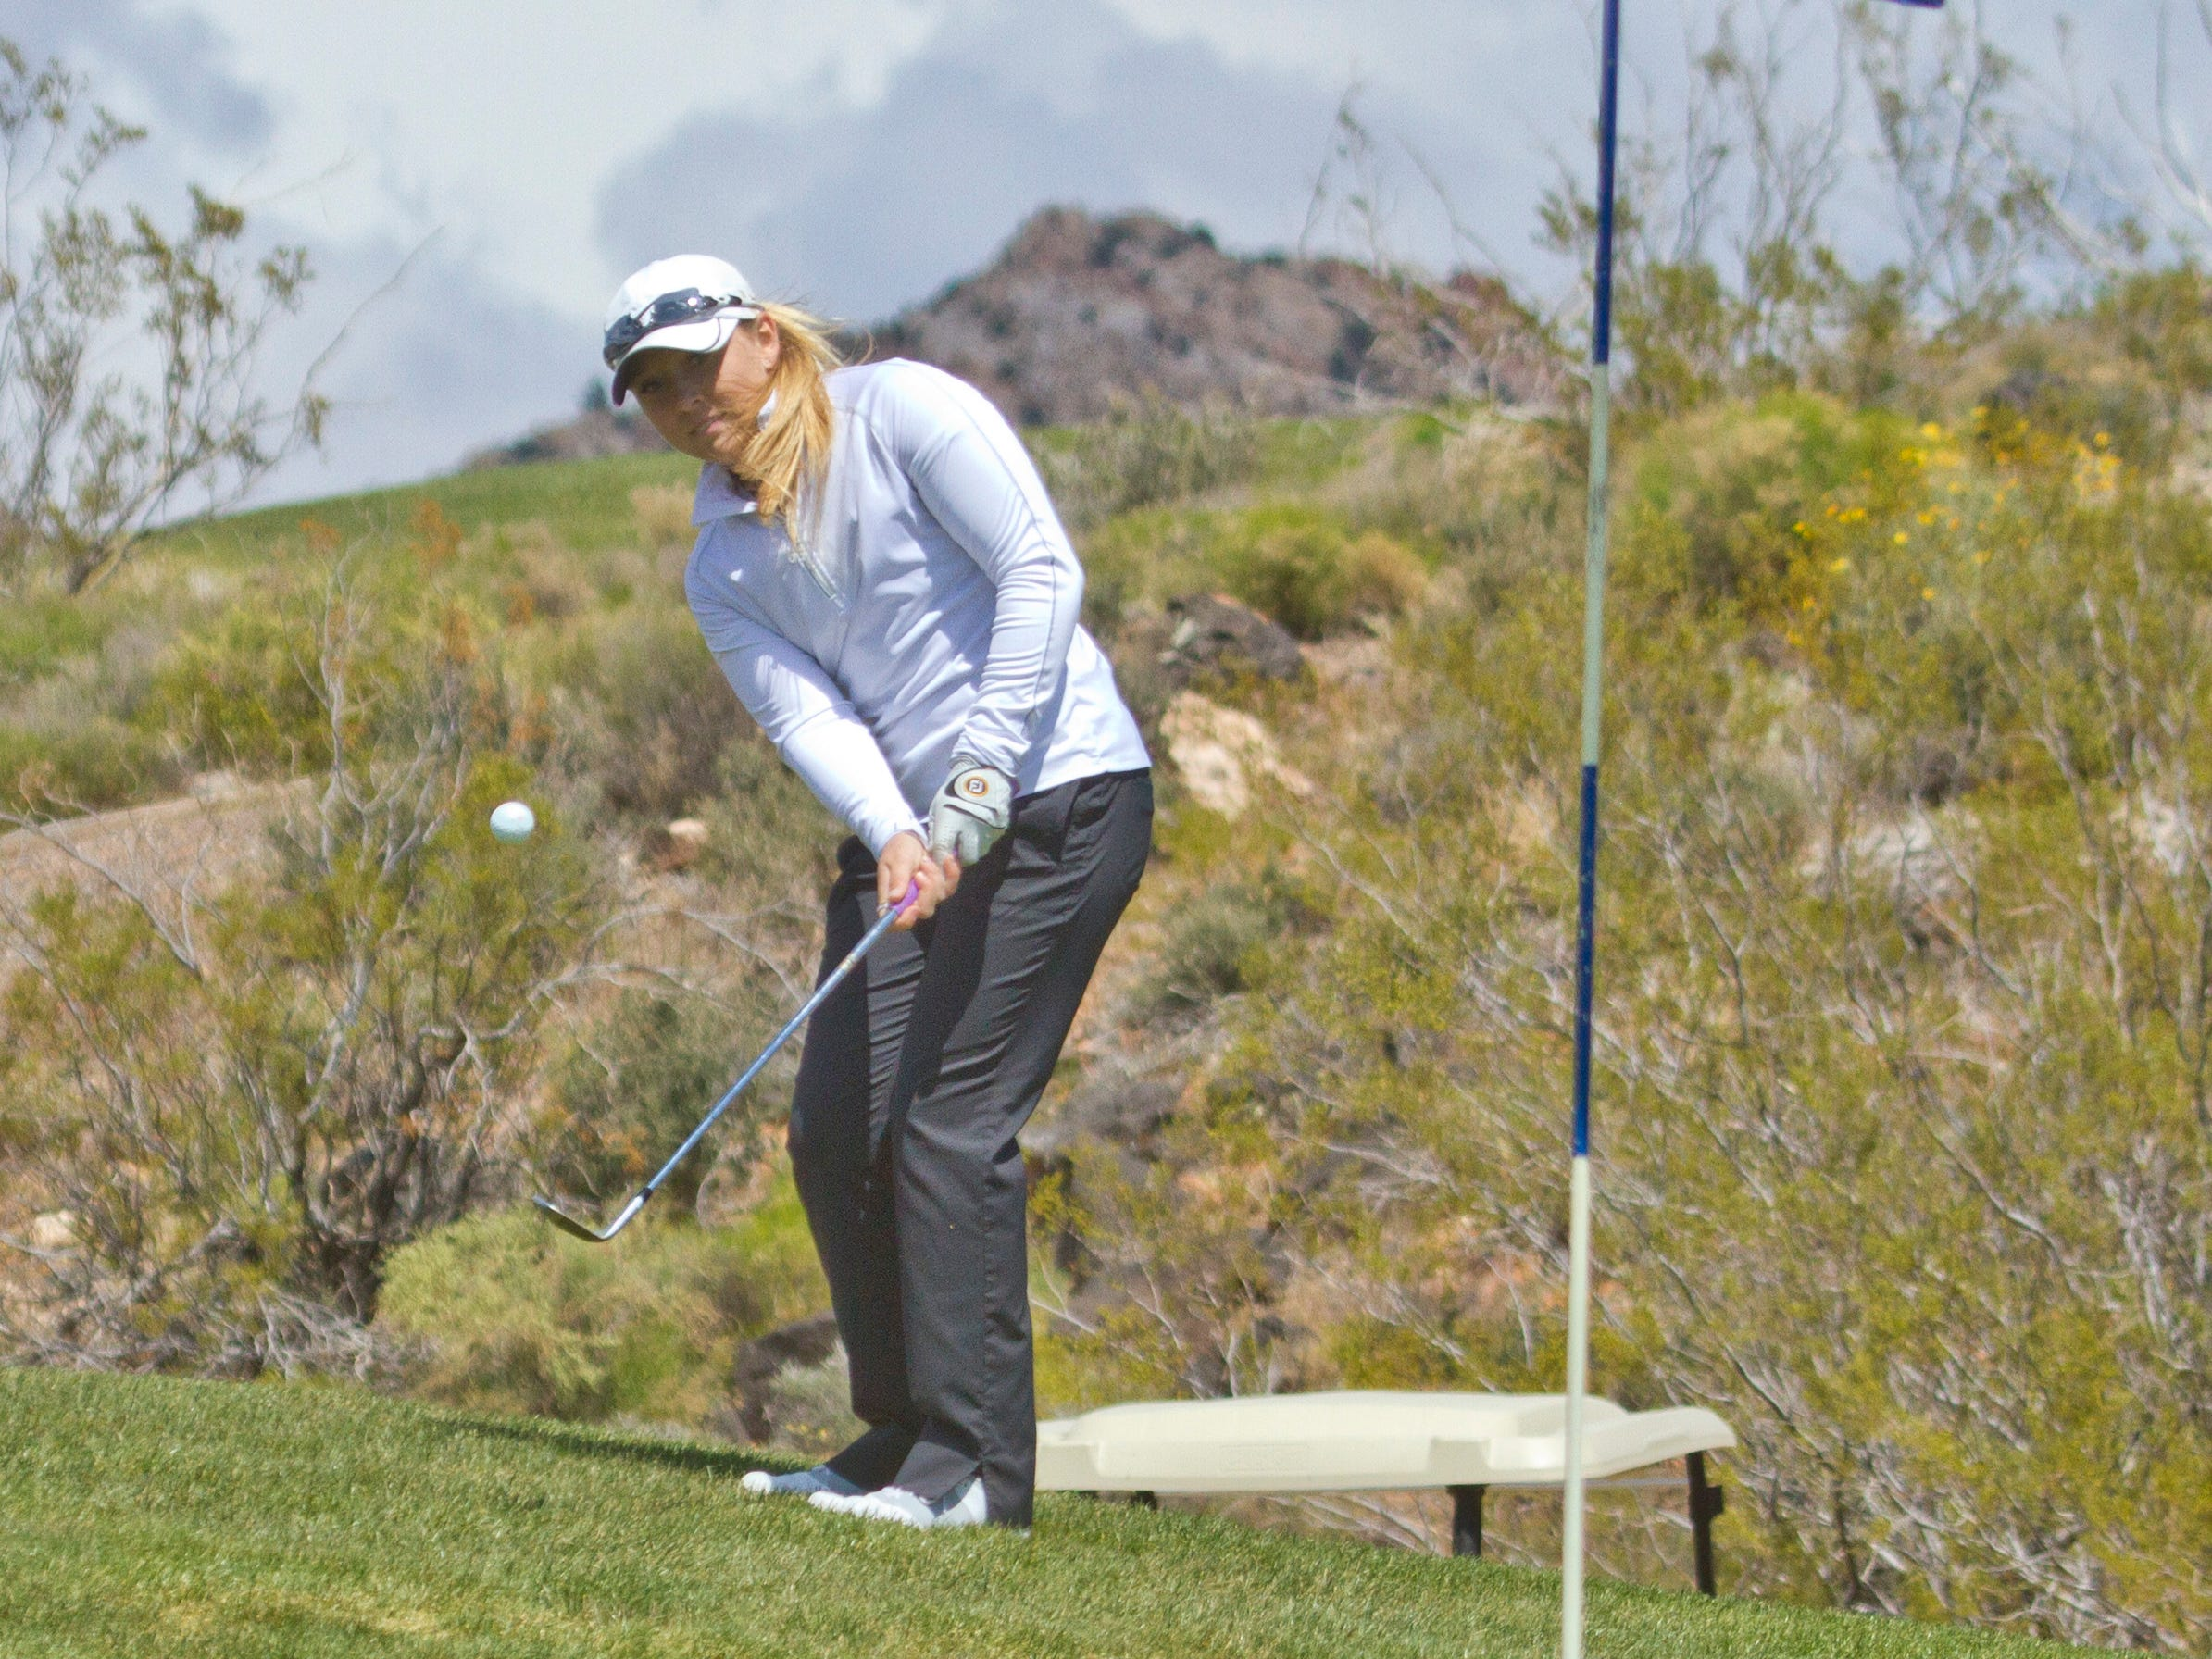 Pine View golfer Taylor Bandley ships on the green at Sky Mountain Thursday, April 16, 2015.